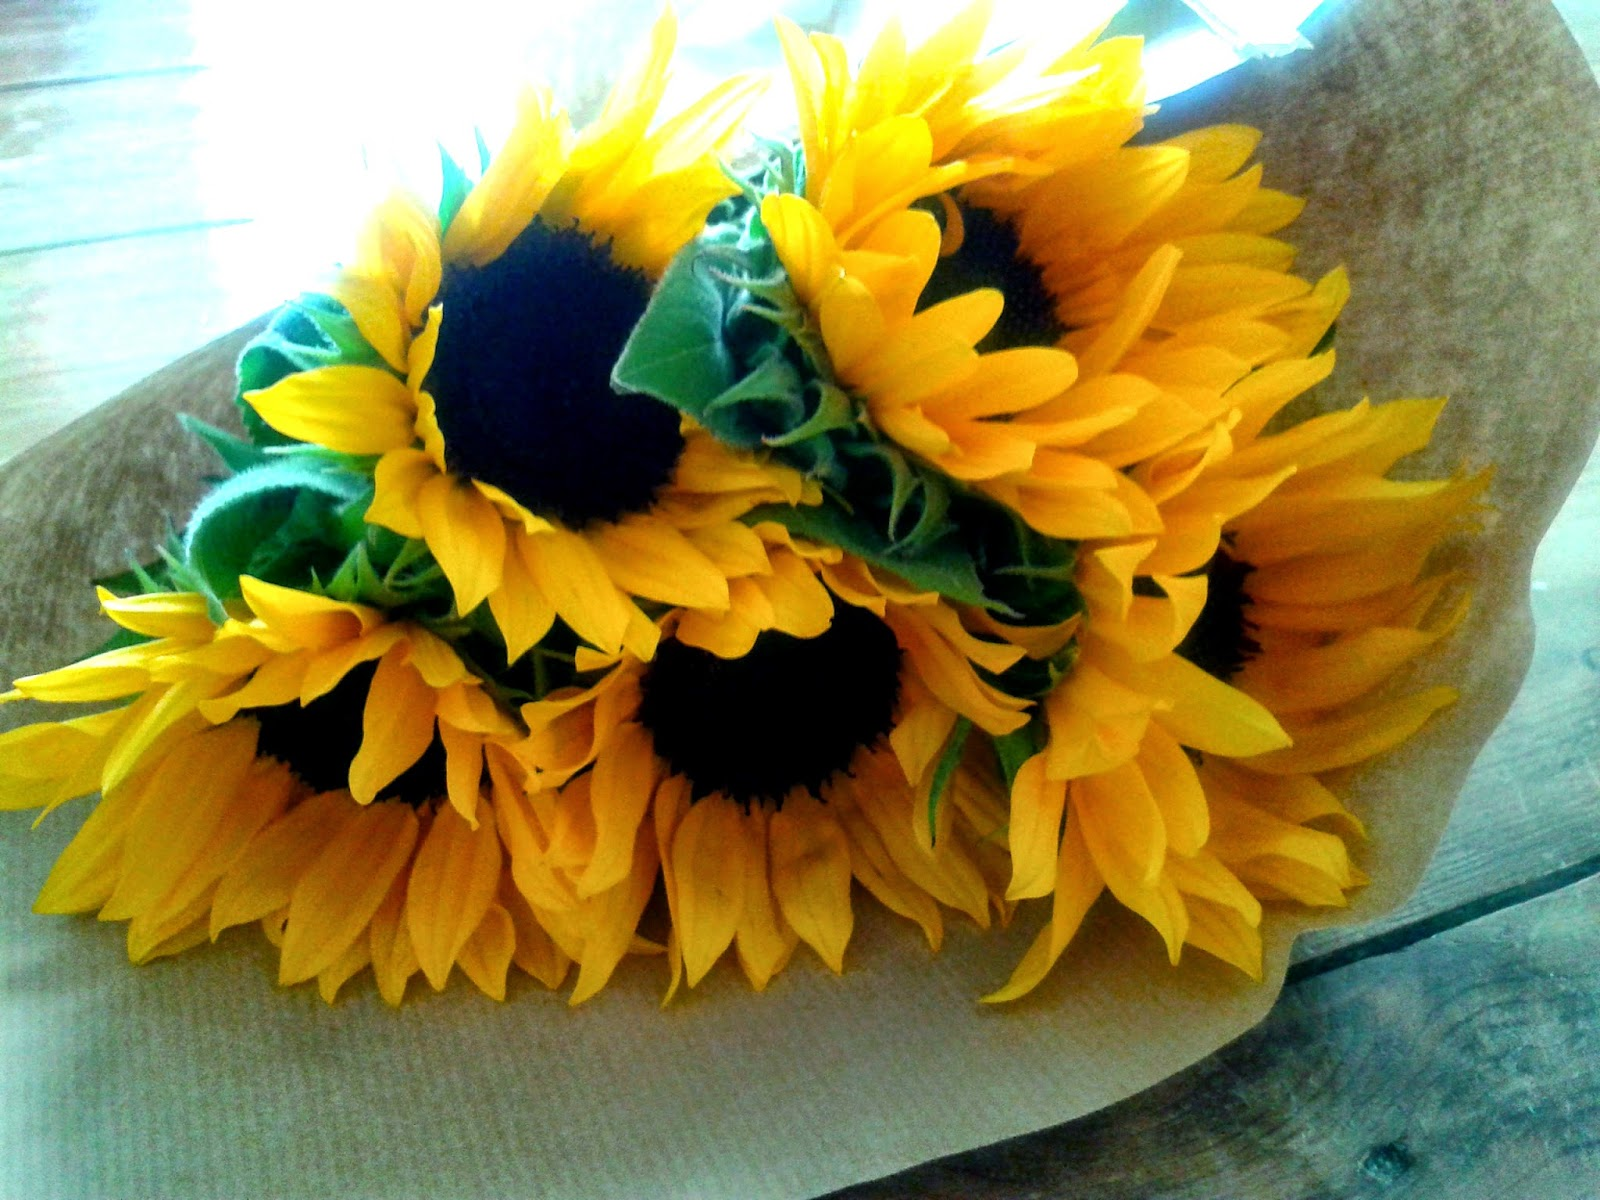 Project 365 day 120 - Sunflowers // 76sunflowers